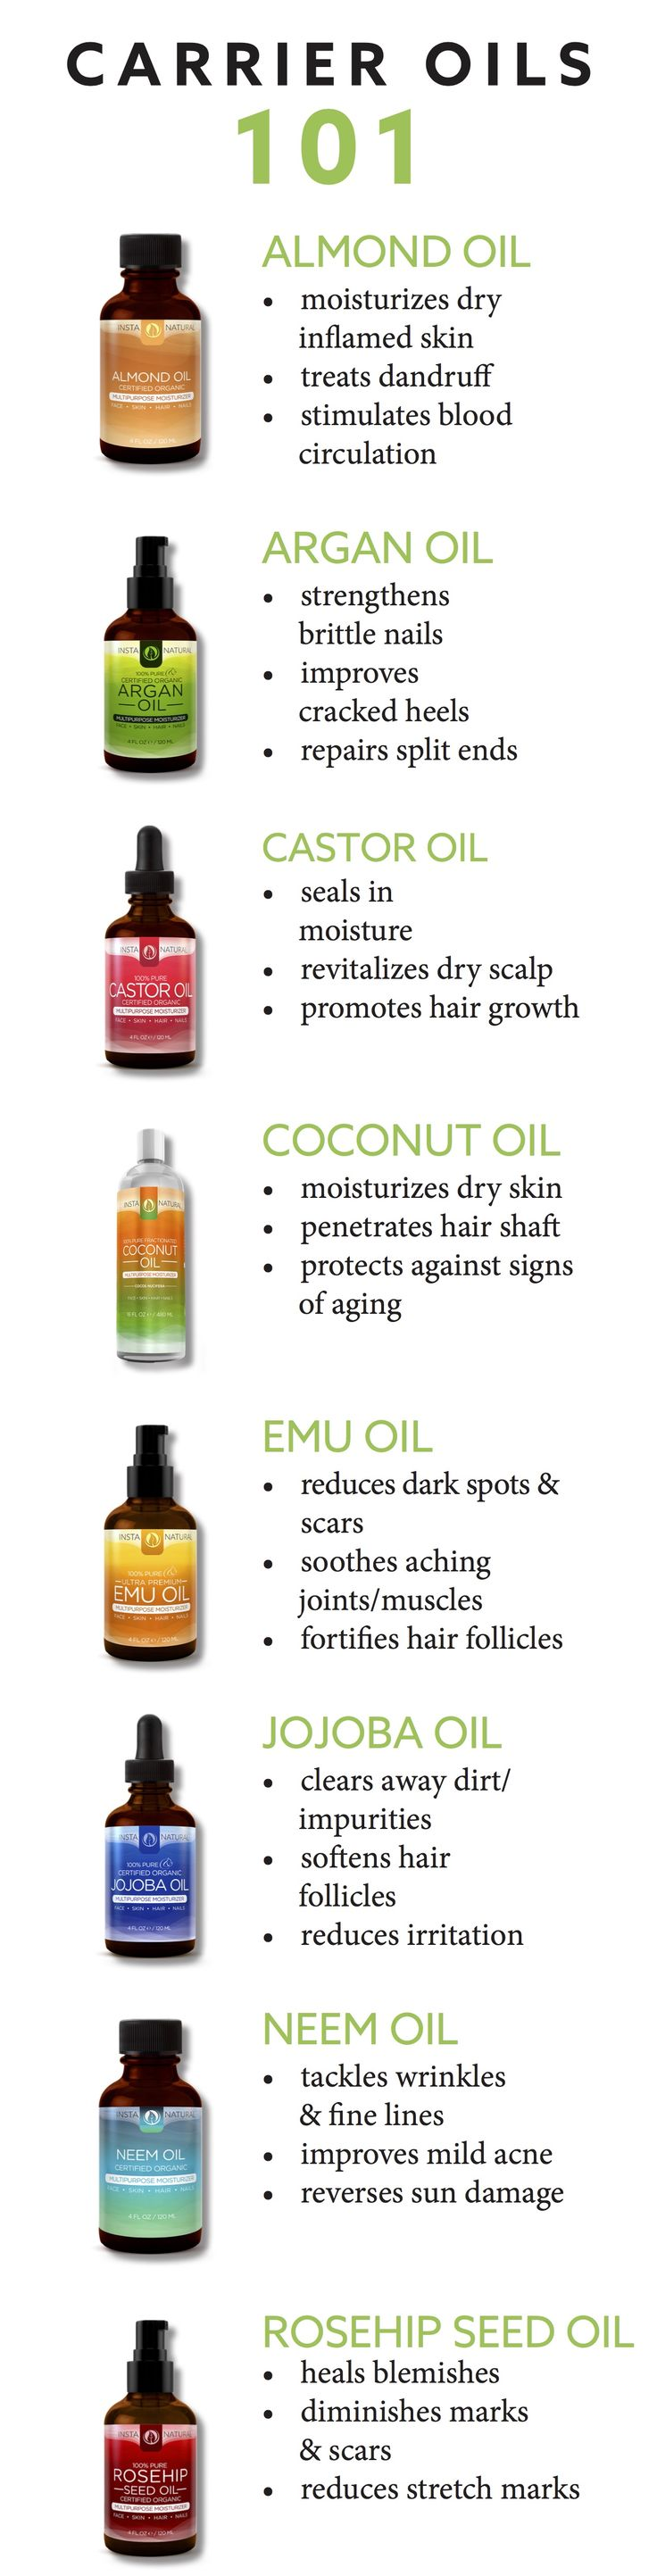 Discover all the amazing benefits of carrier oils!